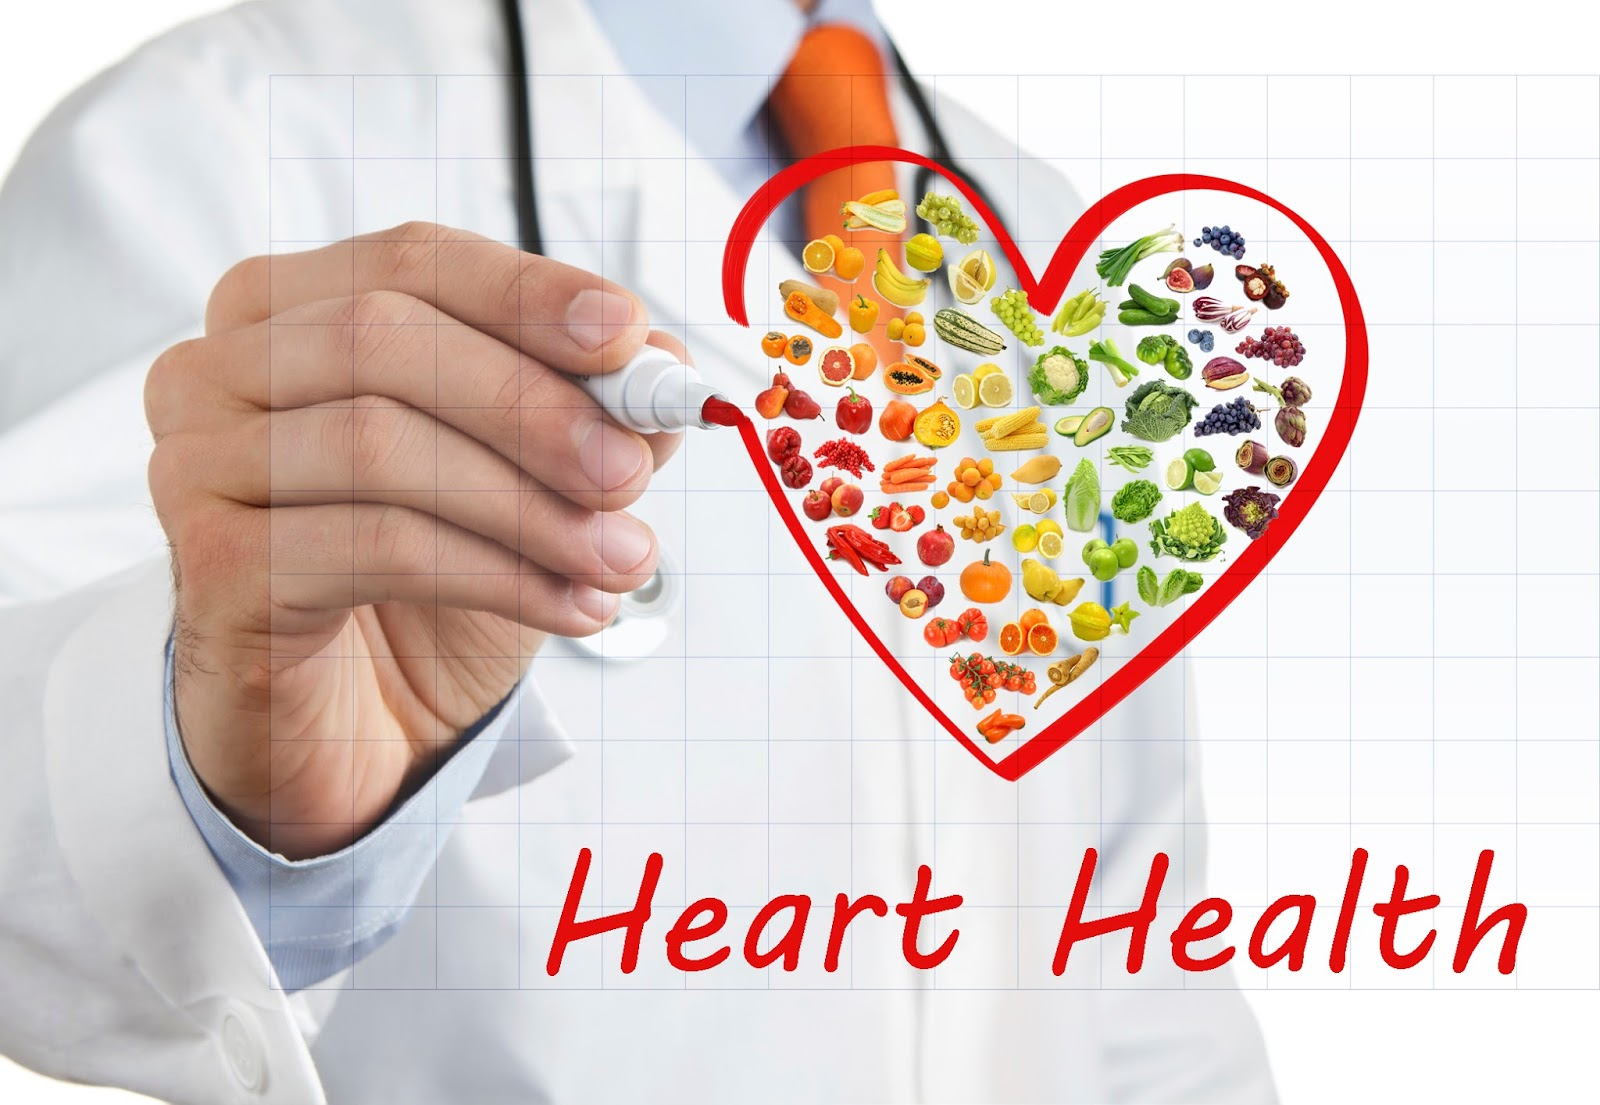 Top 7 Heart-Healthy Foods + How to Follow a Heart-Healthy Diet